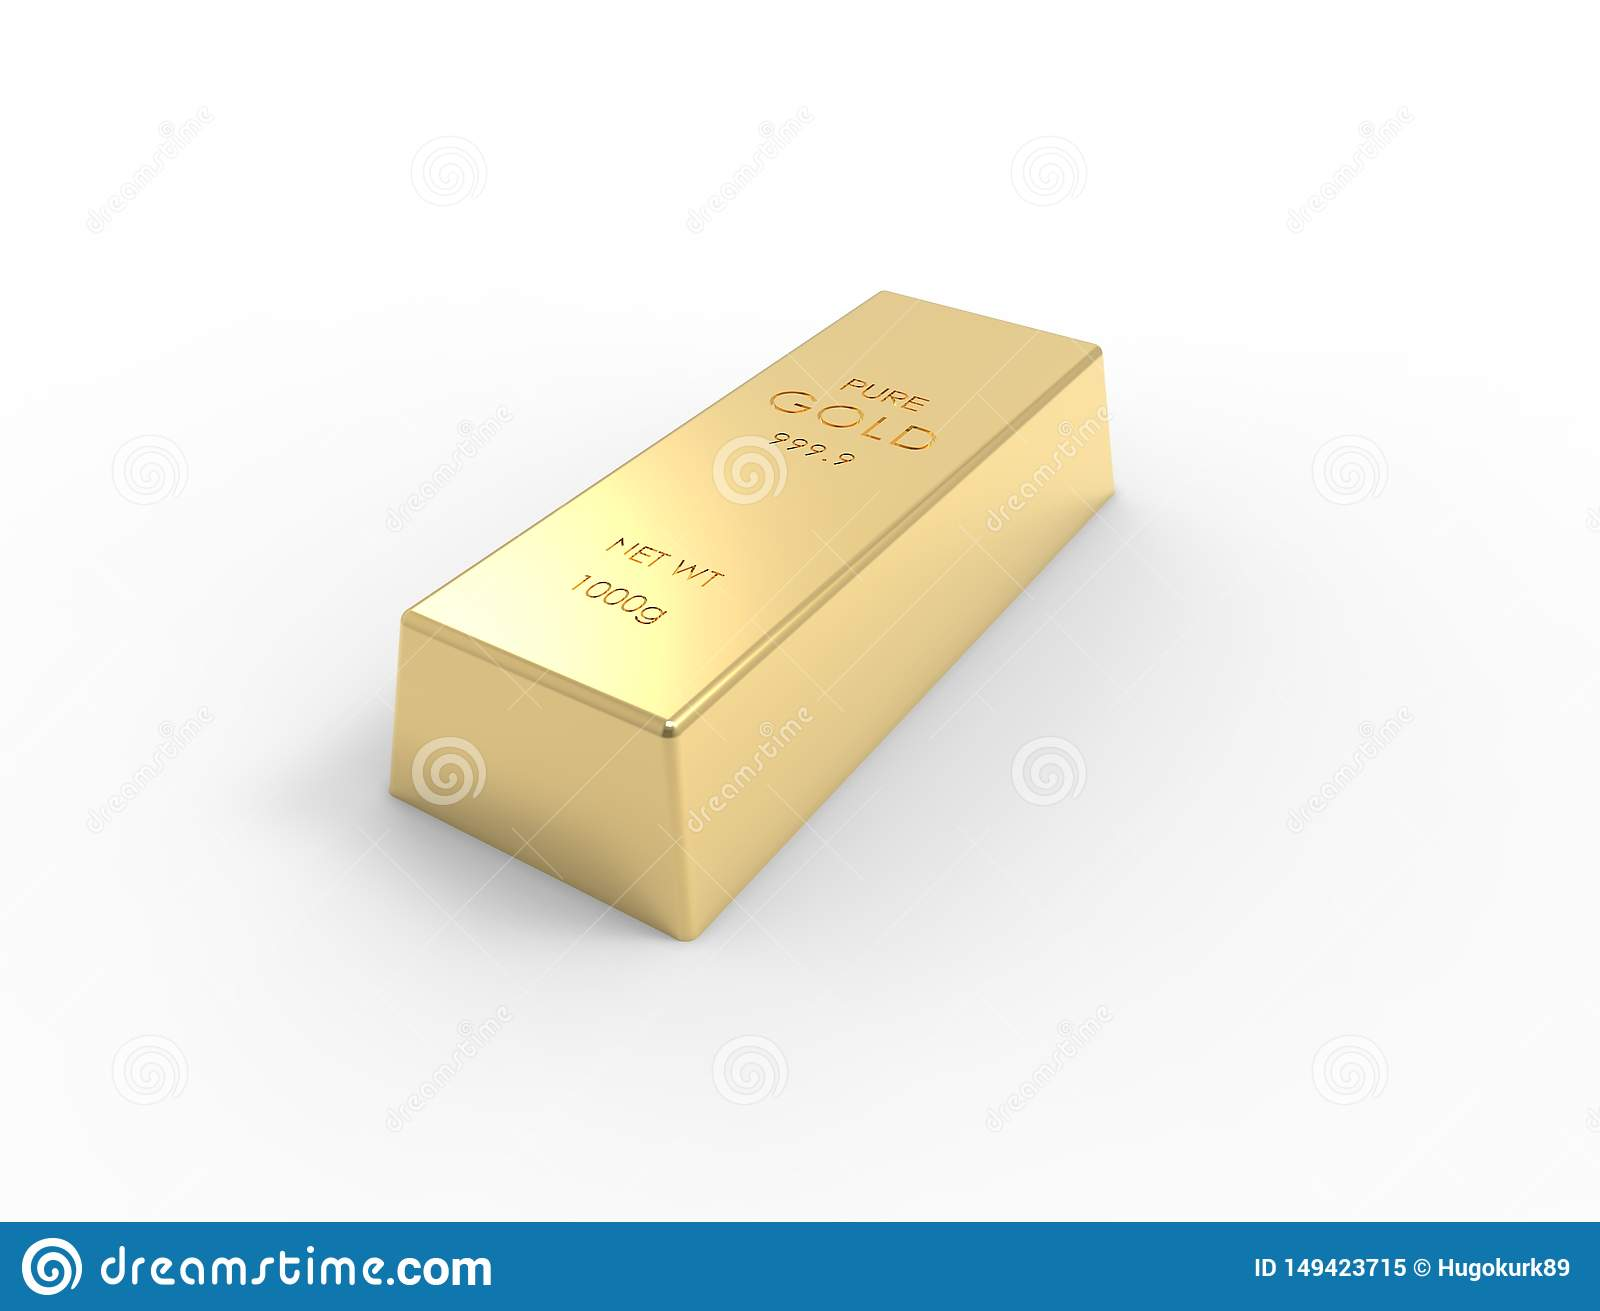 3D rendering of gold bars isolated on white studio background